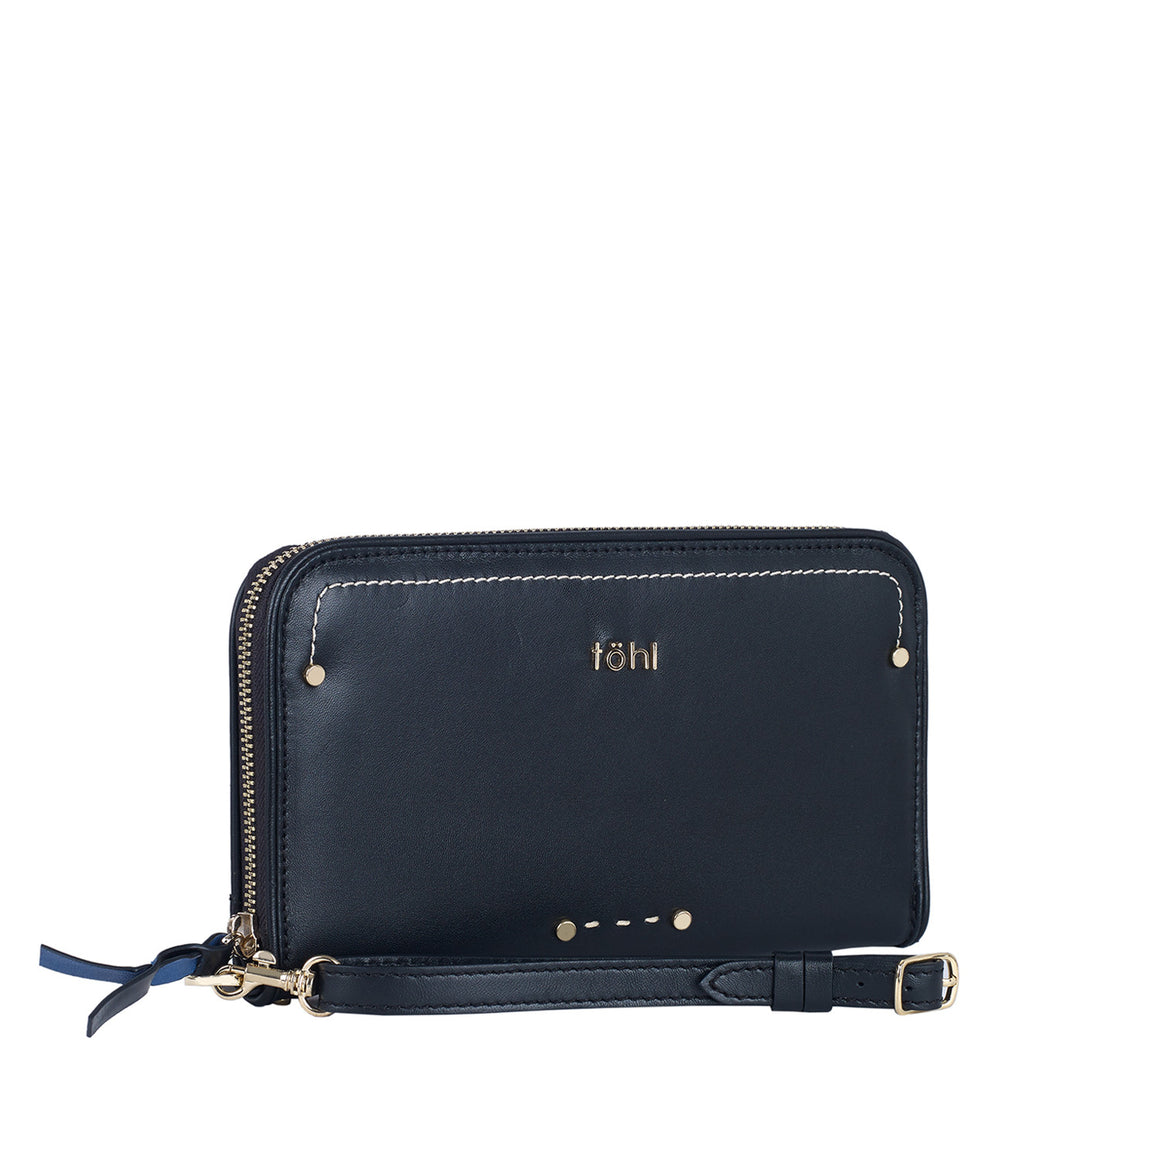 WT 0005 - TOHL TINI WOMEN'S ZIP WALLET - CHARCOAL BLACK